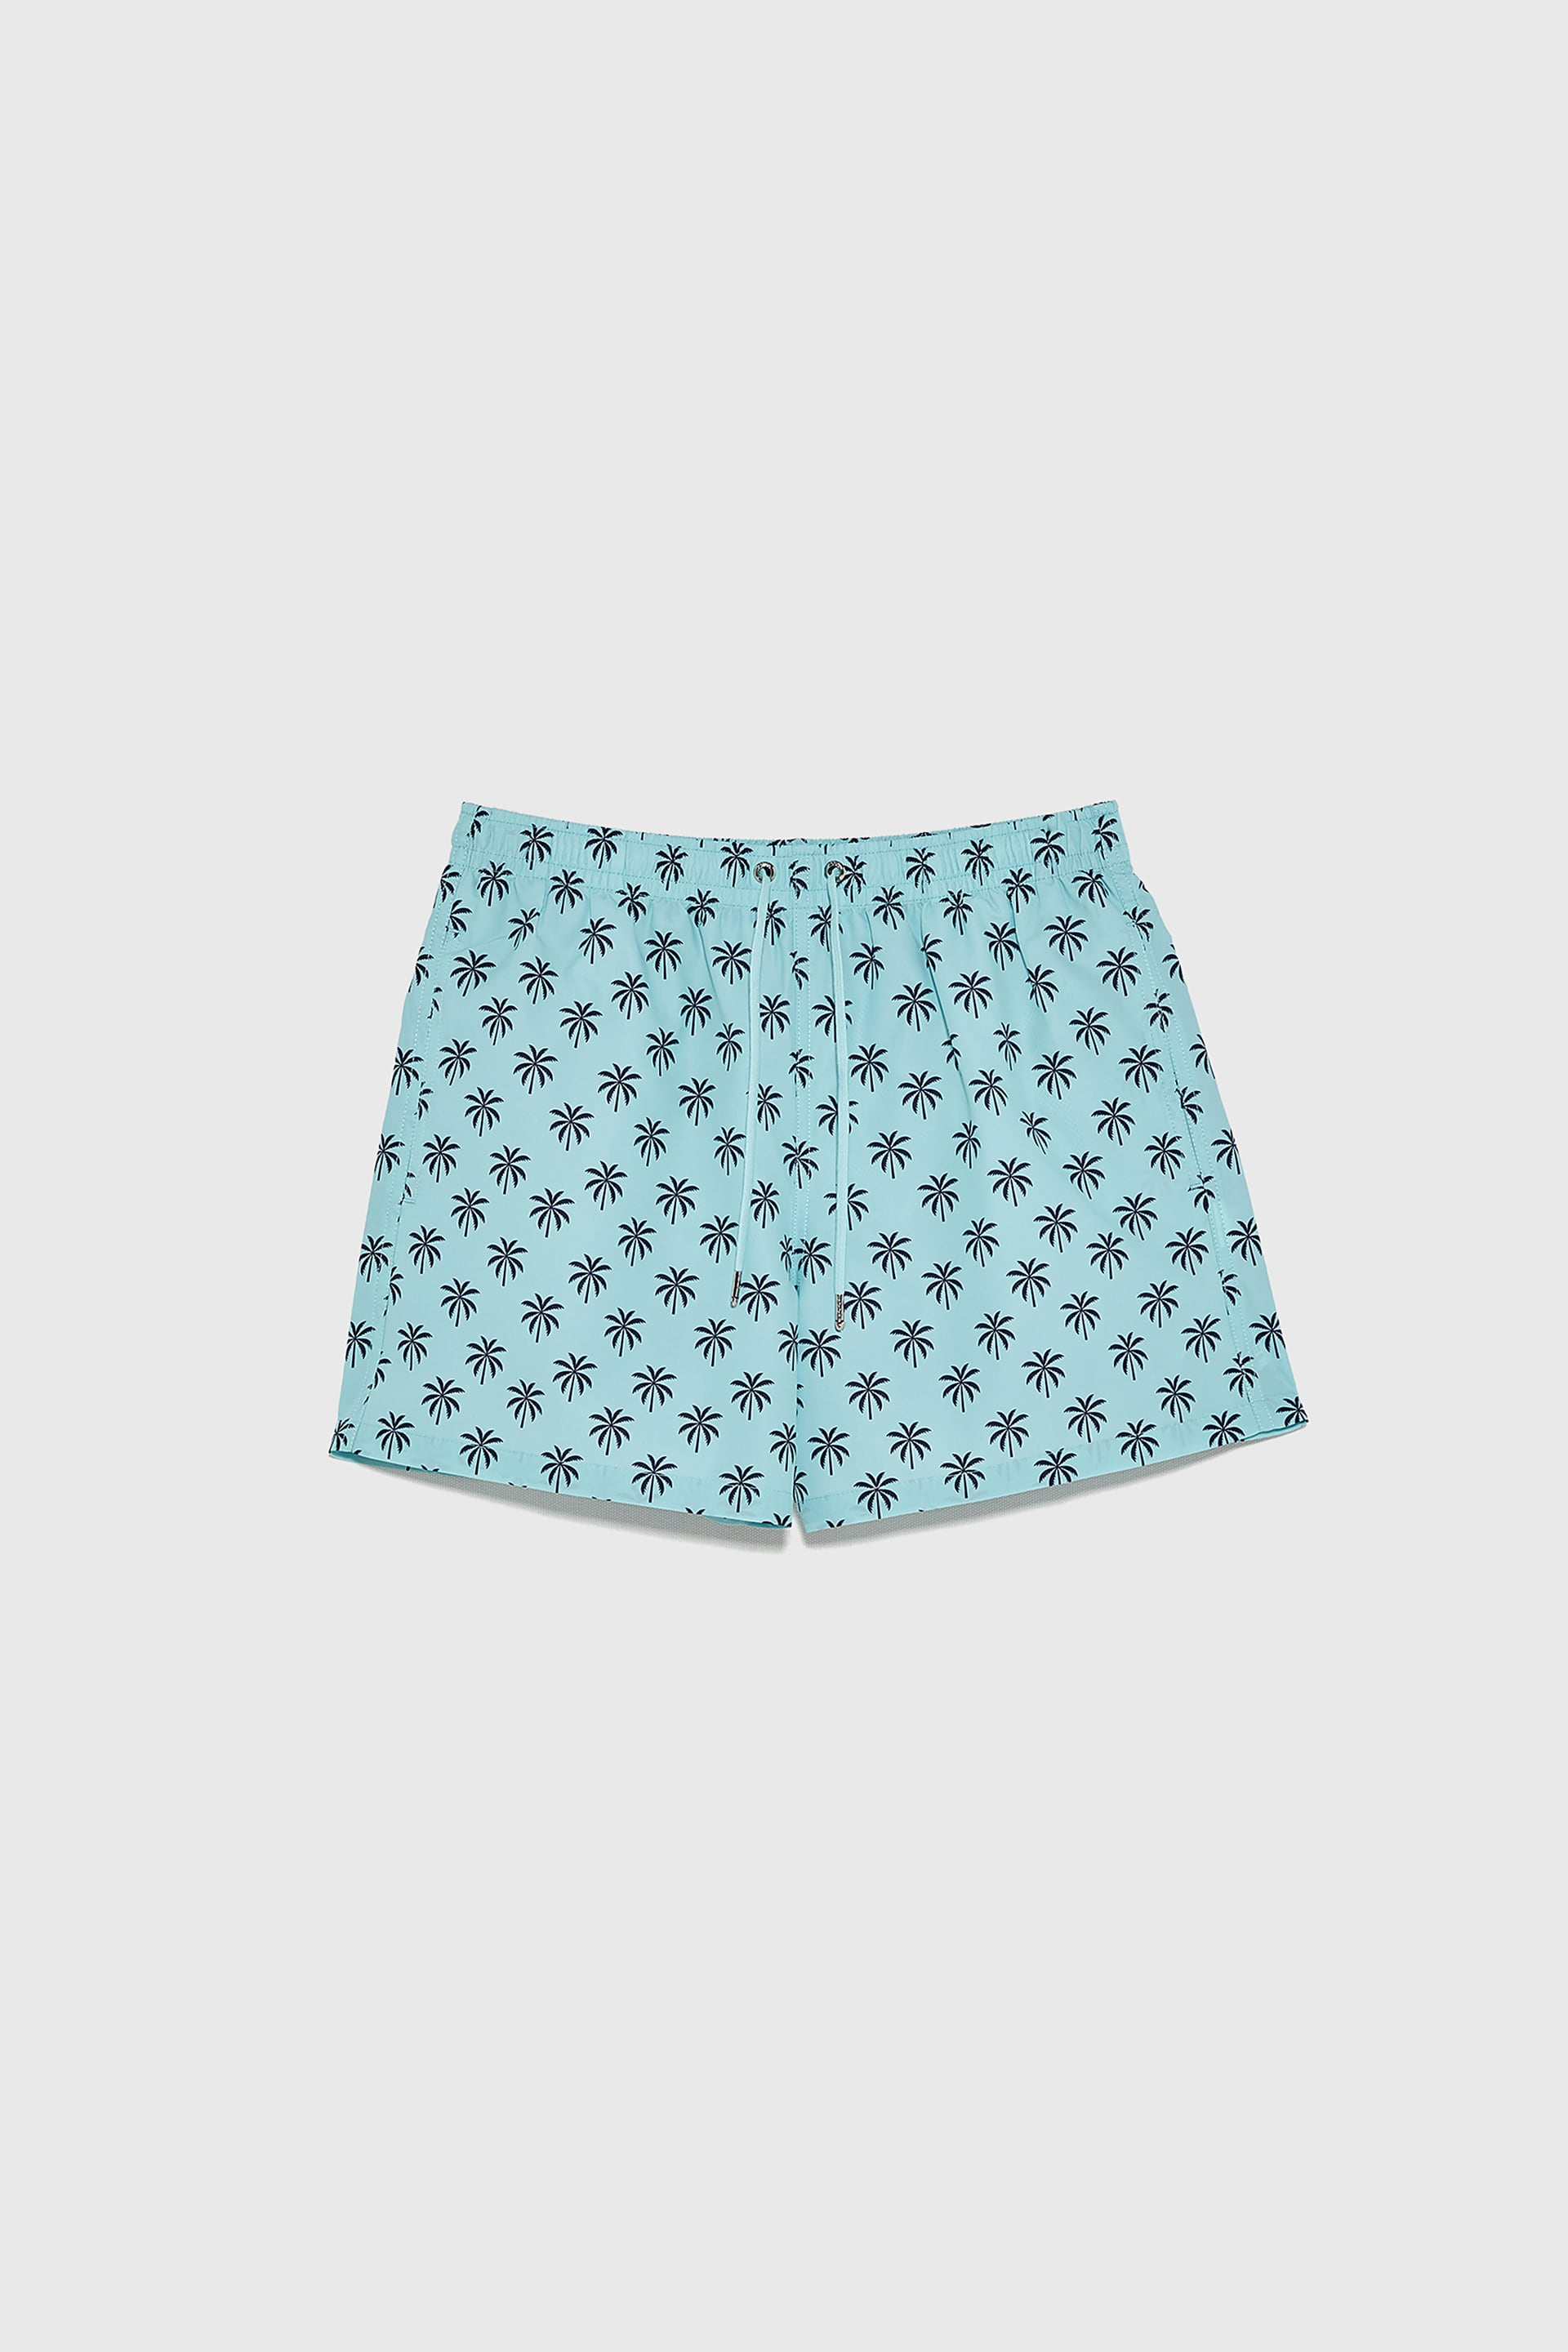 d81917415e PALM TREE PRINT SWIM SHORTS - Swimwear-ACCESSORIES-MAN | ZARA Portugal